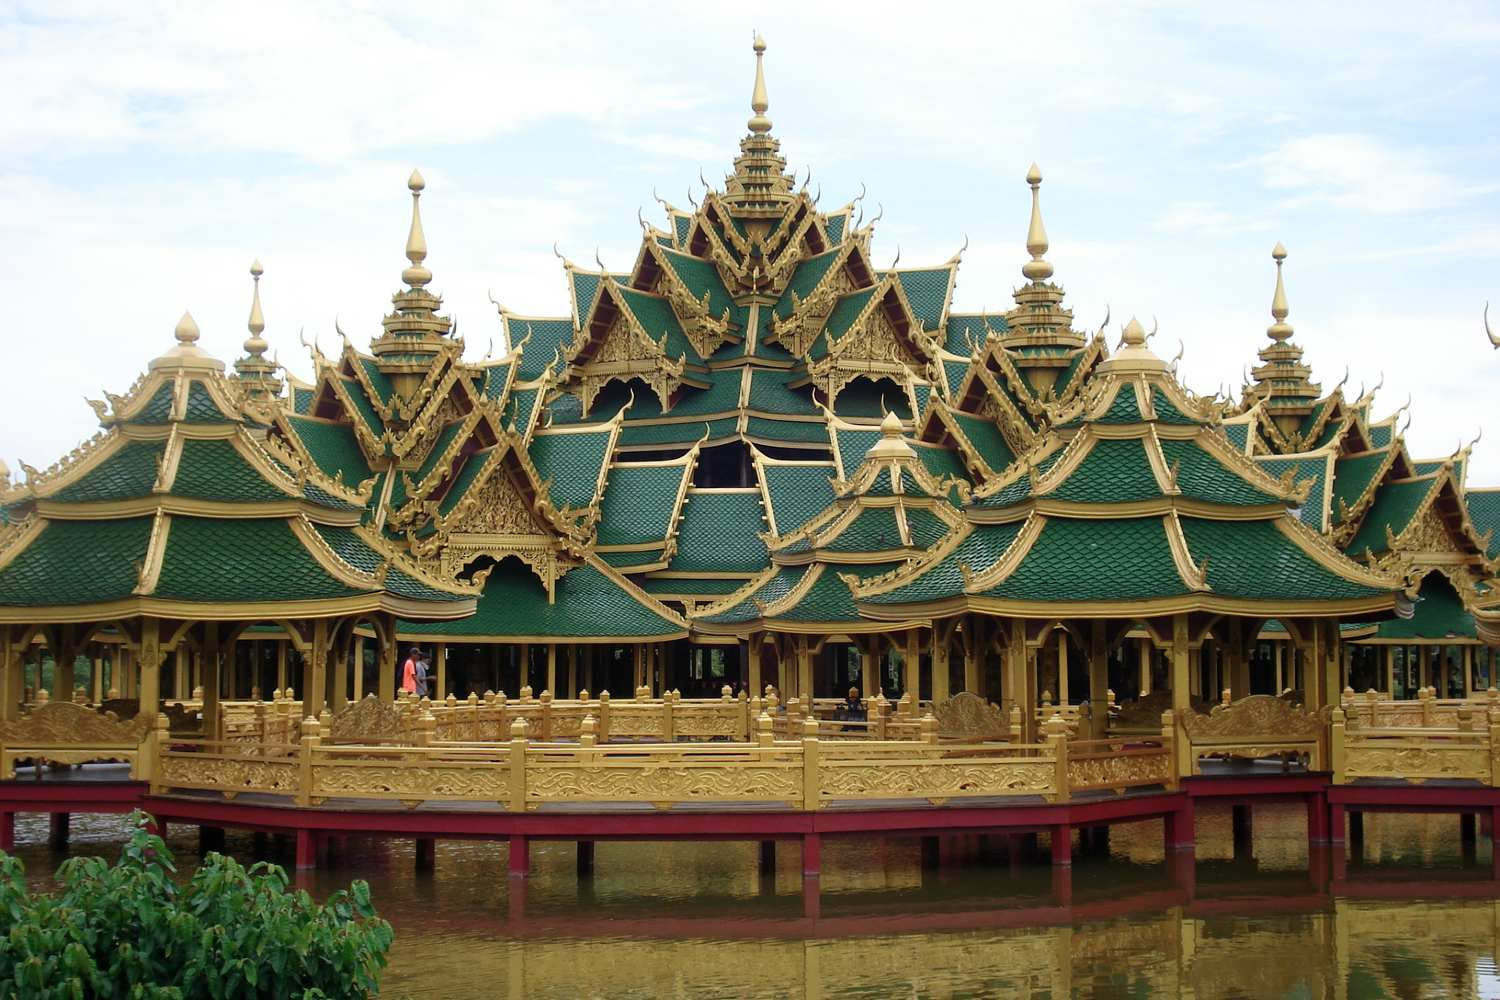 Temple reconstructed in detail in Ancient City, Bangkok, Thailand